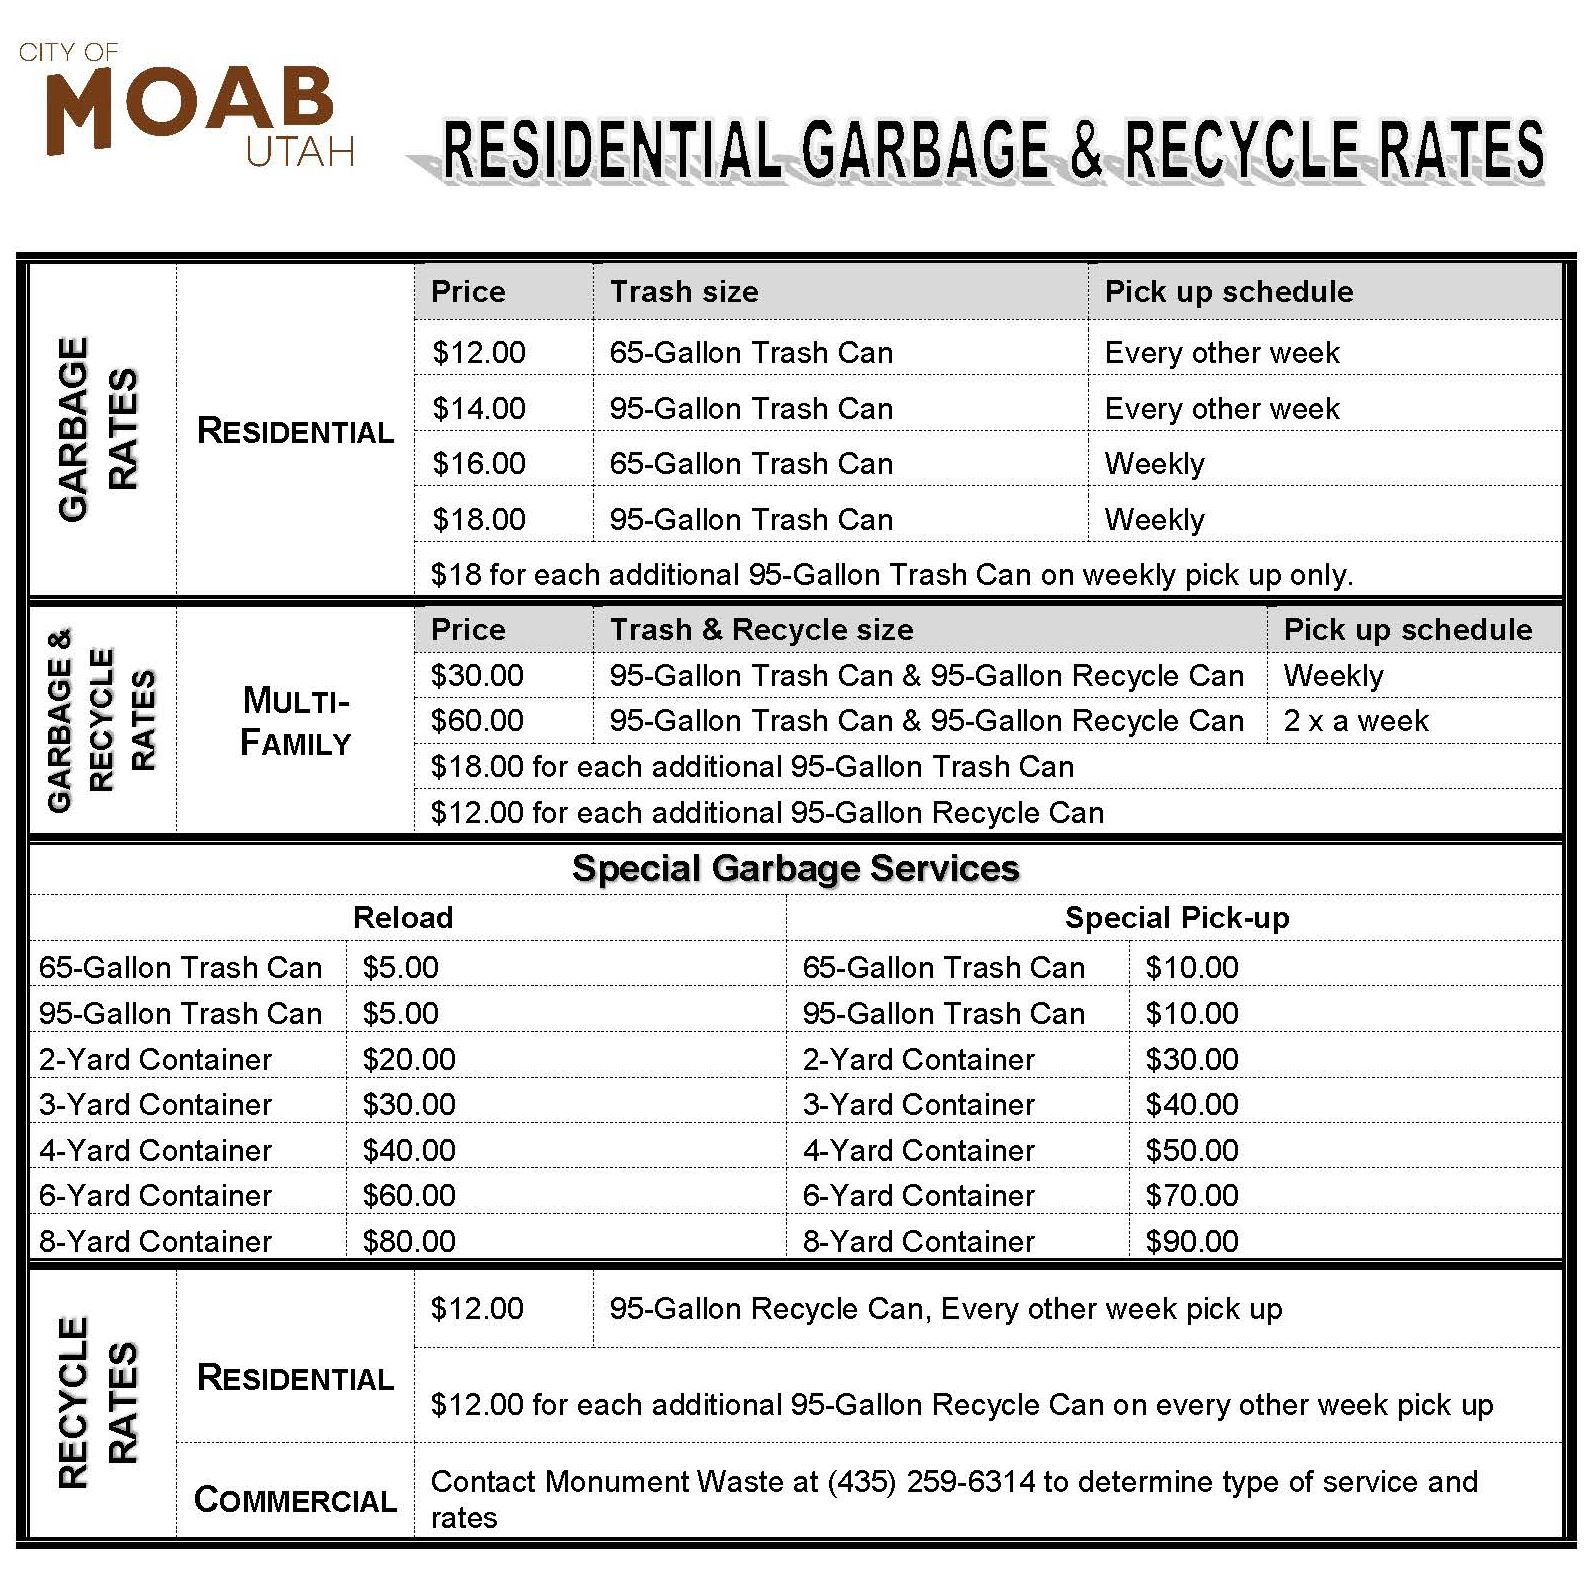 Residential Garbage and Recycling Rates